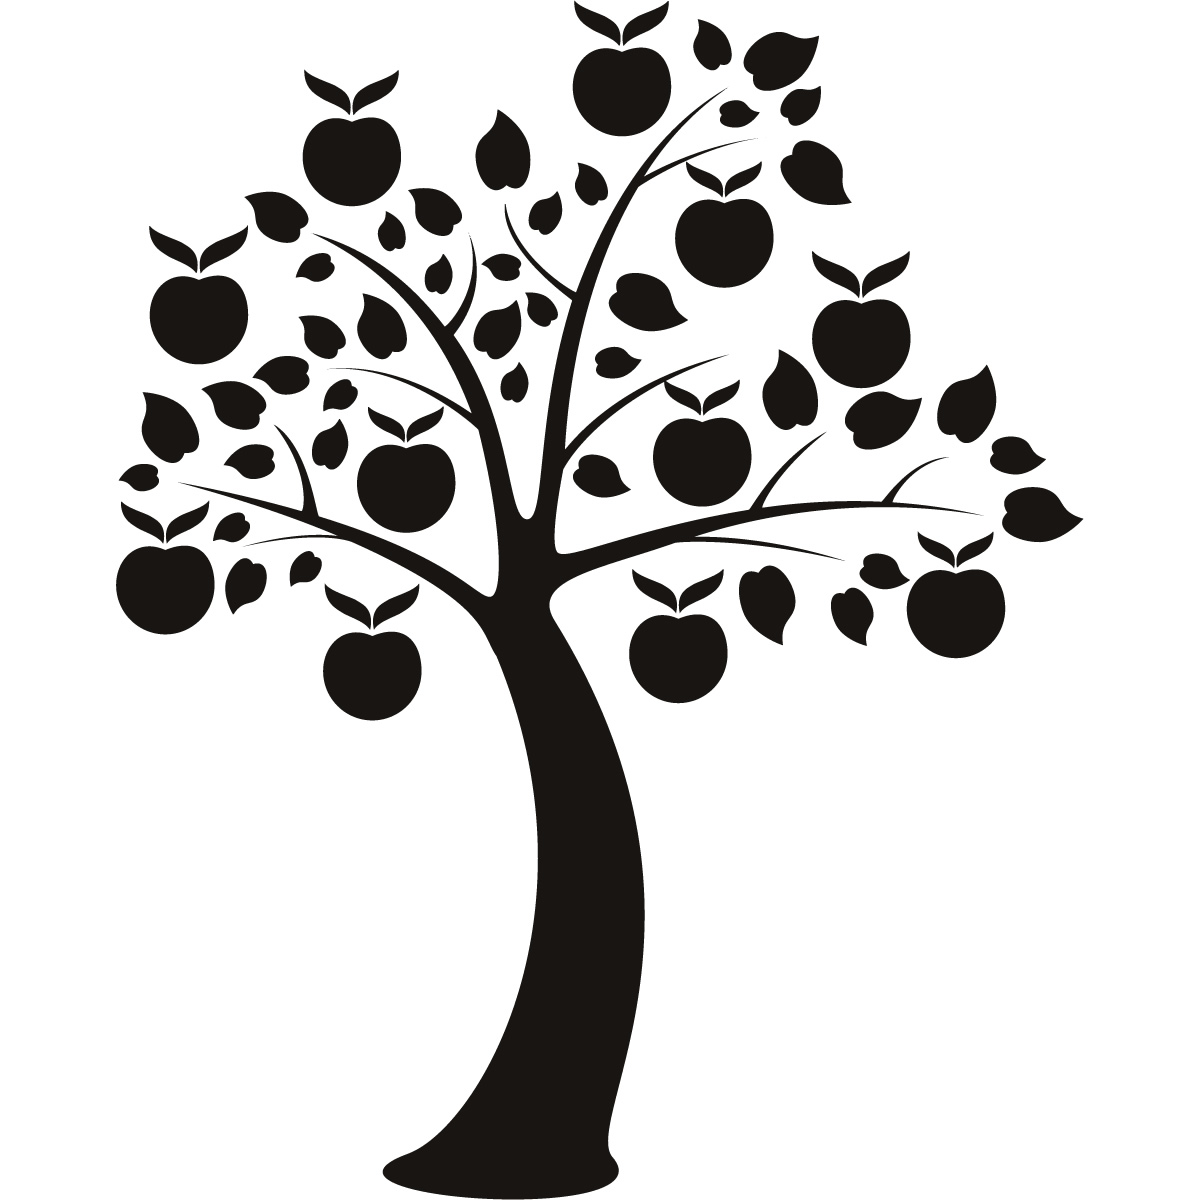 17029304821385487 additionally The Sparrow Bird The Silhouette 1782079 also Fossils Clipart likewise 569635052845758466 further 330771449311. on large silhouette tree wall decals